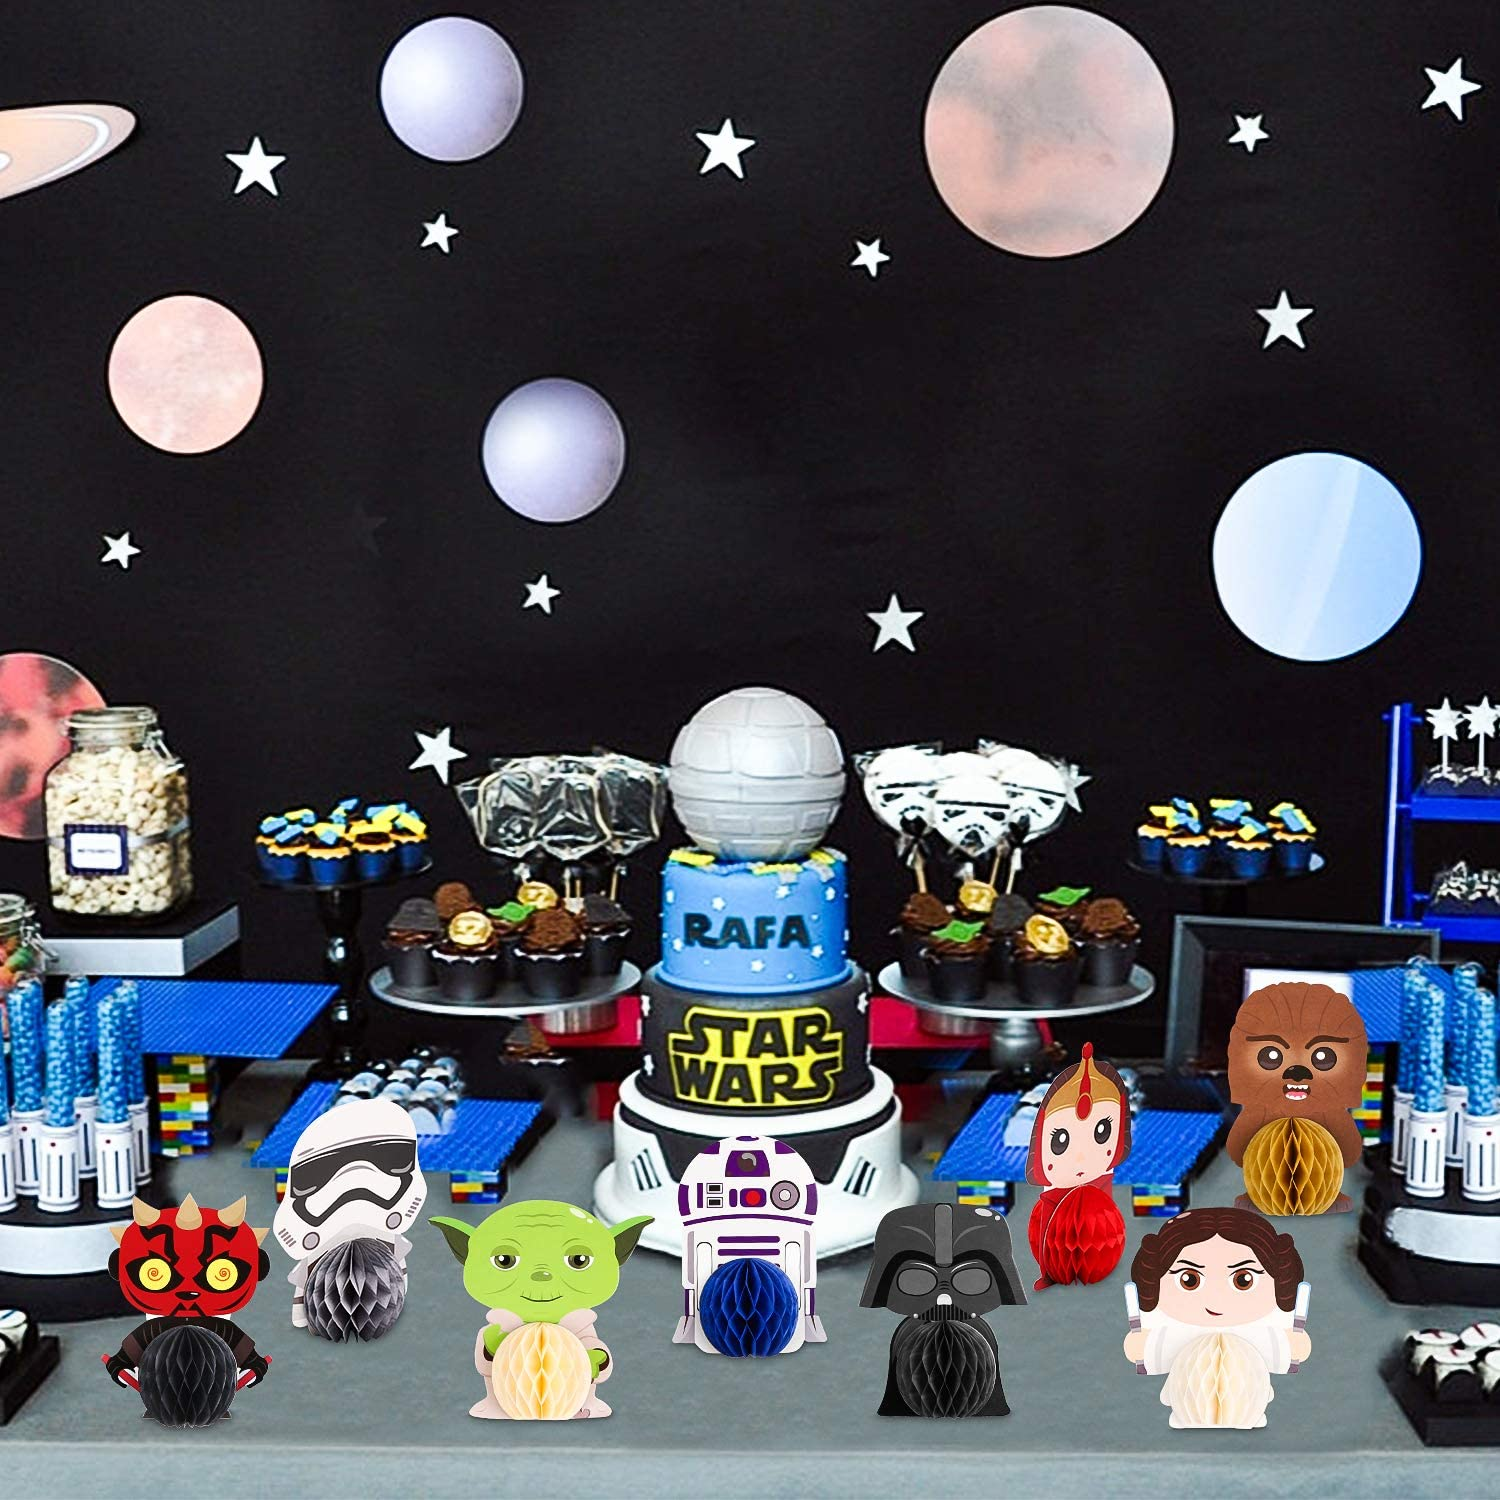 Party Supplies Mallmall6 12pcs Space Wars Honeycomb Centerpieces Planet War Party Table Decorations Universe Superhero Birthday Party Supplies Video Games Themed Party Favors Galaxy Hero Room Decoration For Kids Toys Games